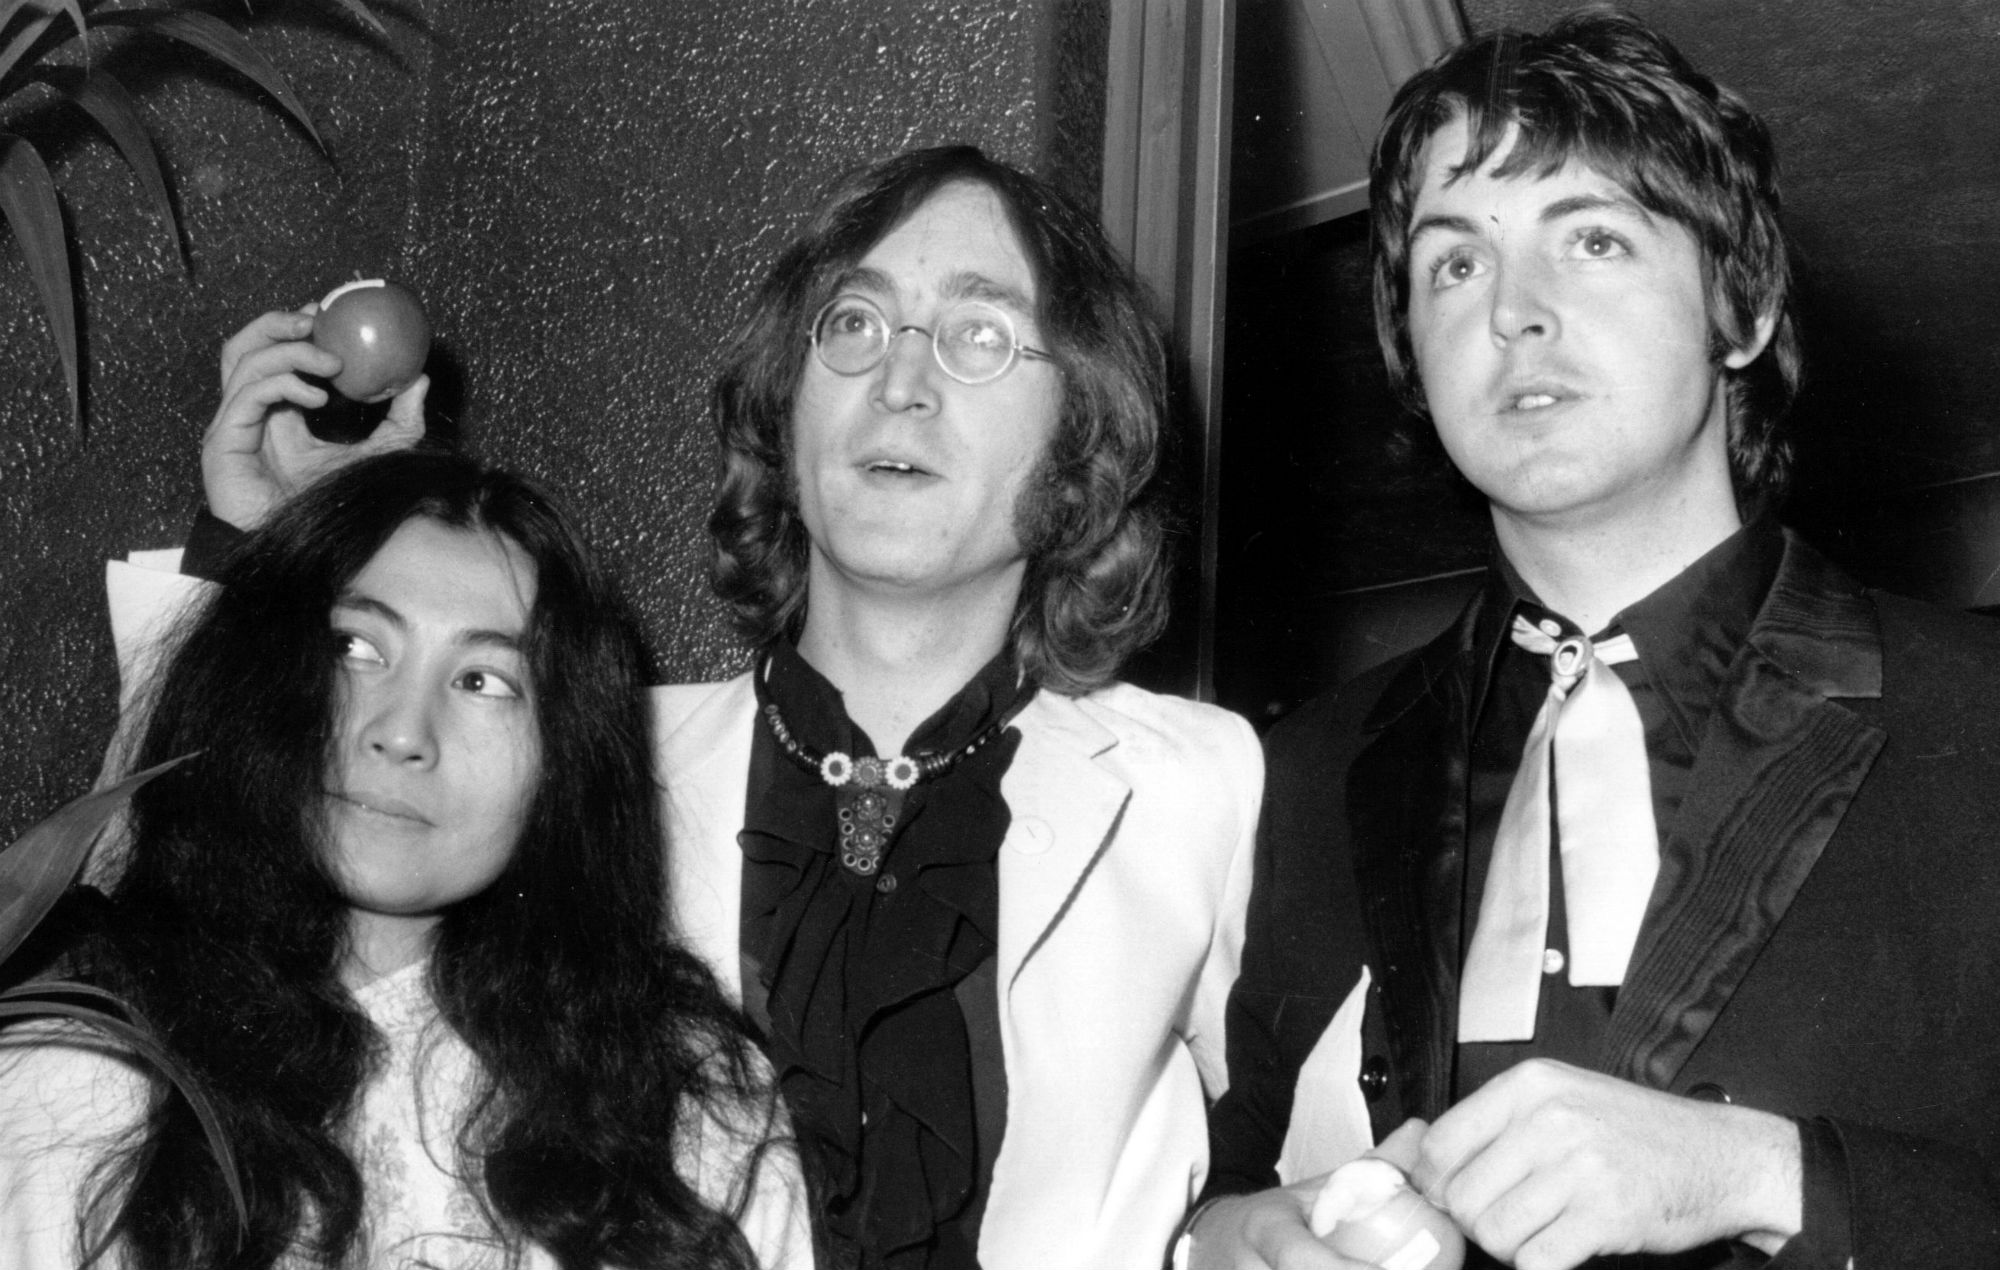 Paul Mccartney And Yoko Ono Lead Tributes To John Lennon On 40th Anniversary Of His Death